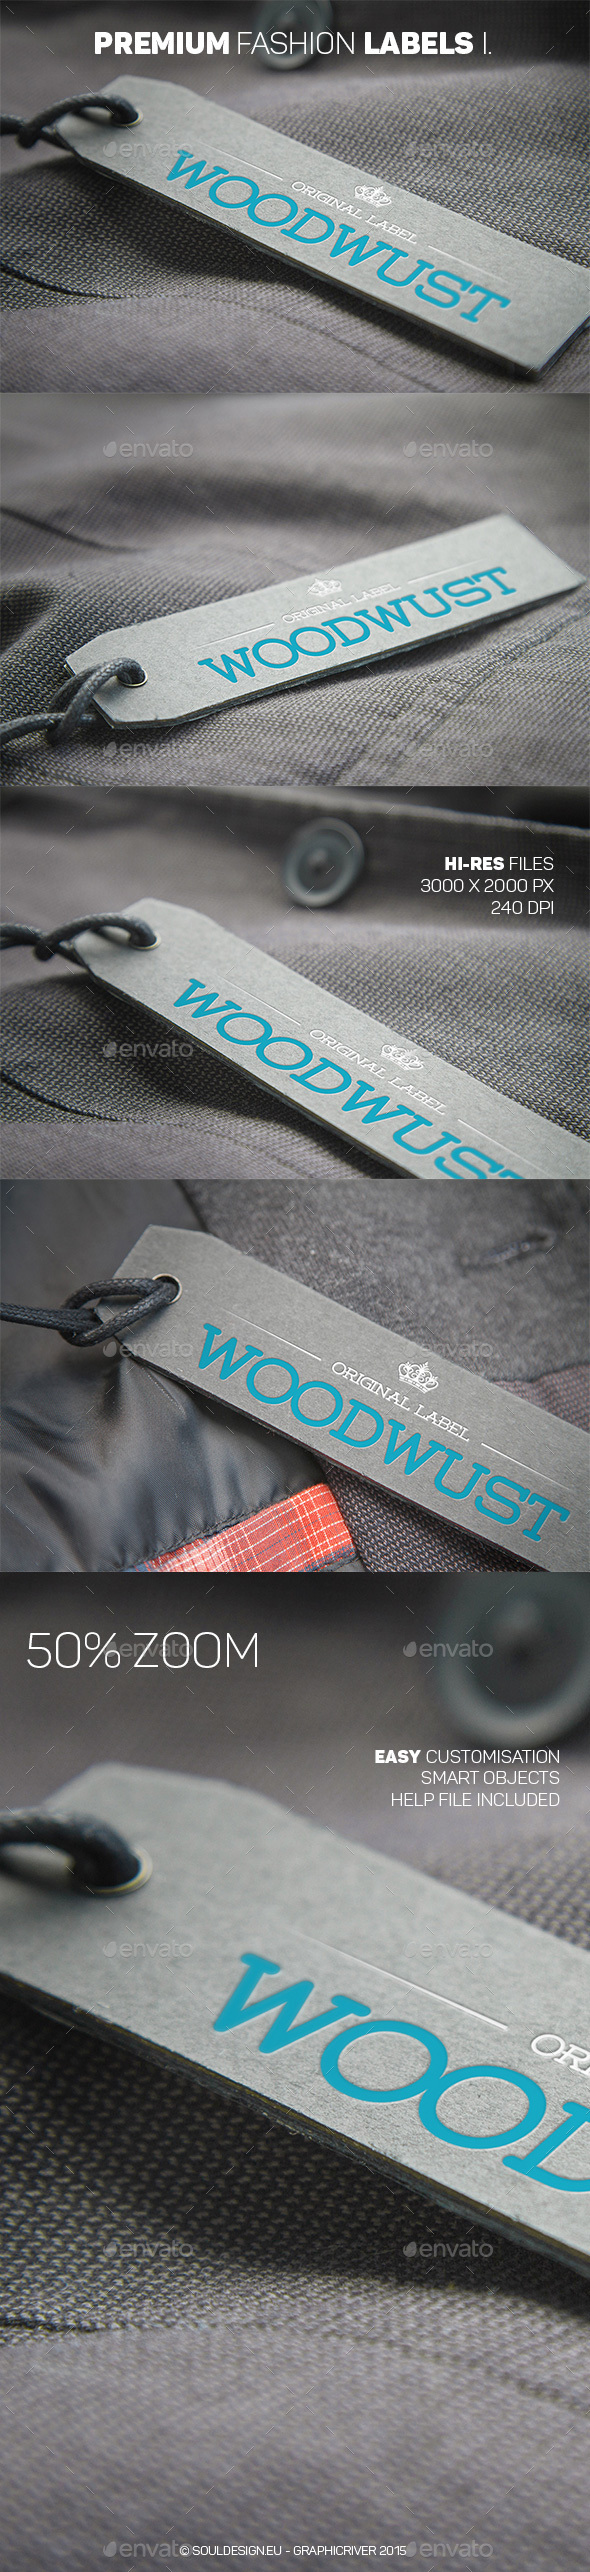 Premium Fashion Labels Mockup I - Logo Product Mock-Ups